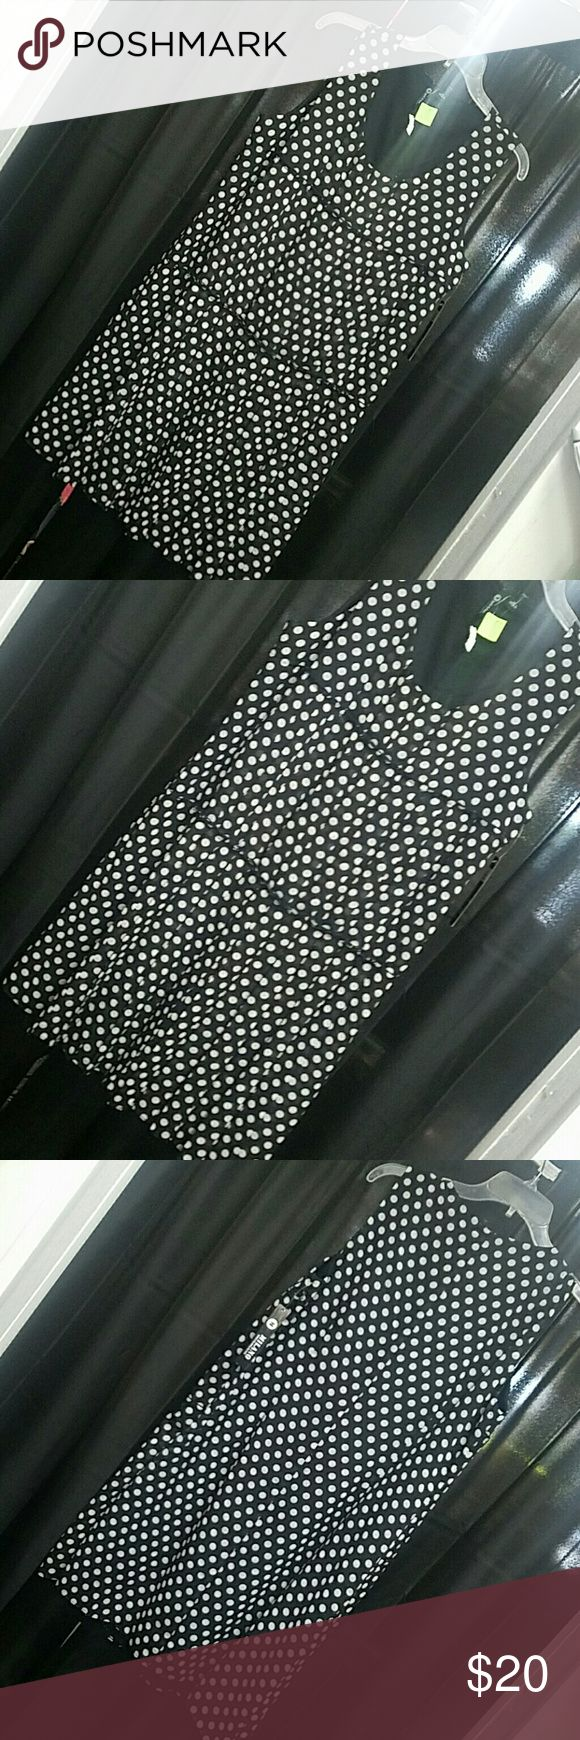 MILANO Black & White Polka dot dress NWT. I love this dress. Pairs great with flats or heels. Great for work or play. Would go great with a sweater or cardigan in the fall.   **All of my items ship with a free gift with your purchase** Milano Formals Dresses